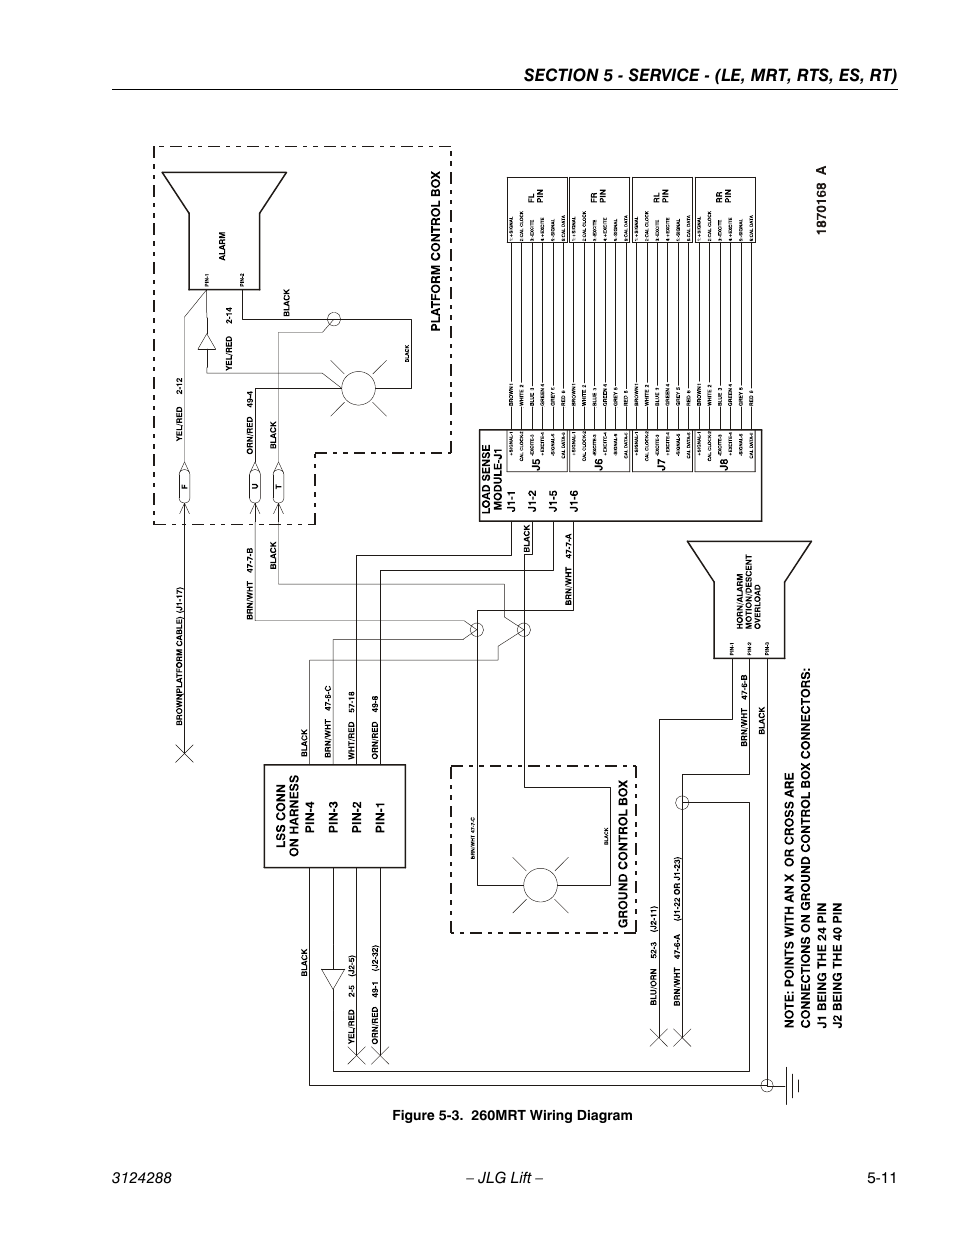 260mrt wiring diagram